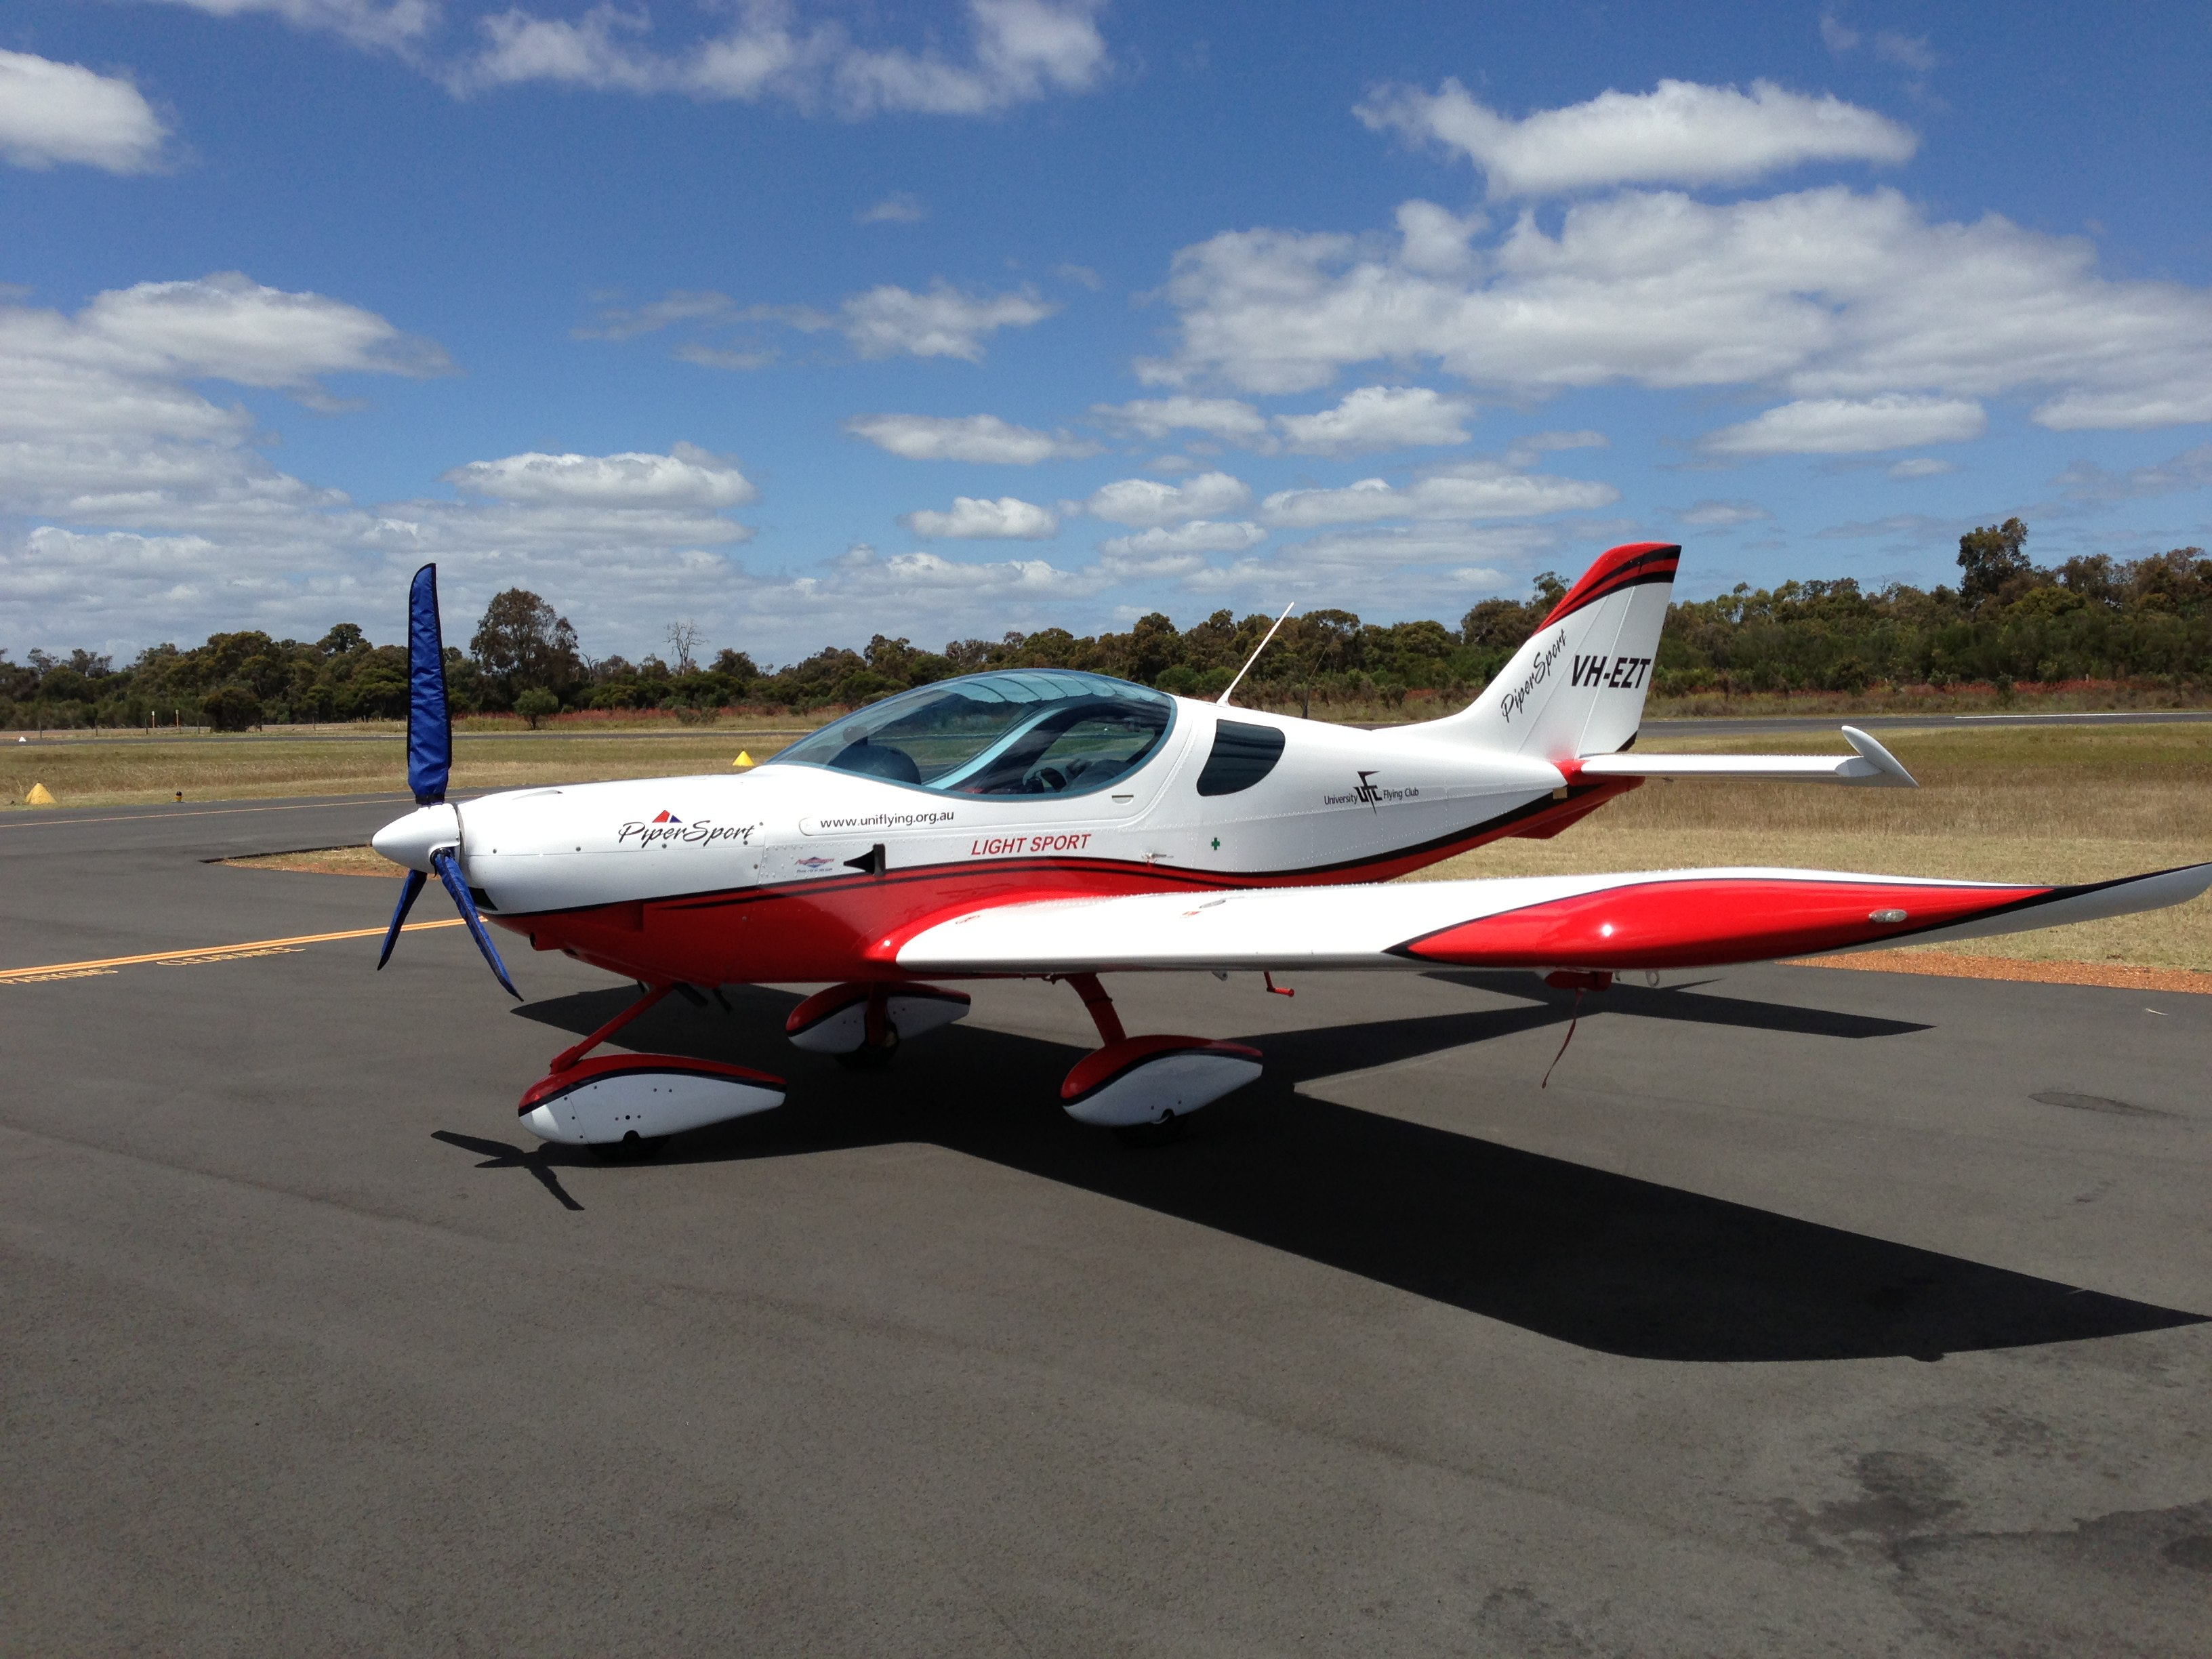 VH-EZT CSA pipersport sportscruiser parked at Bunbury Airport